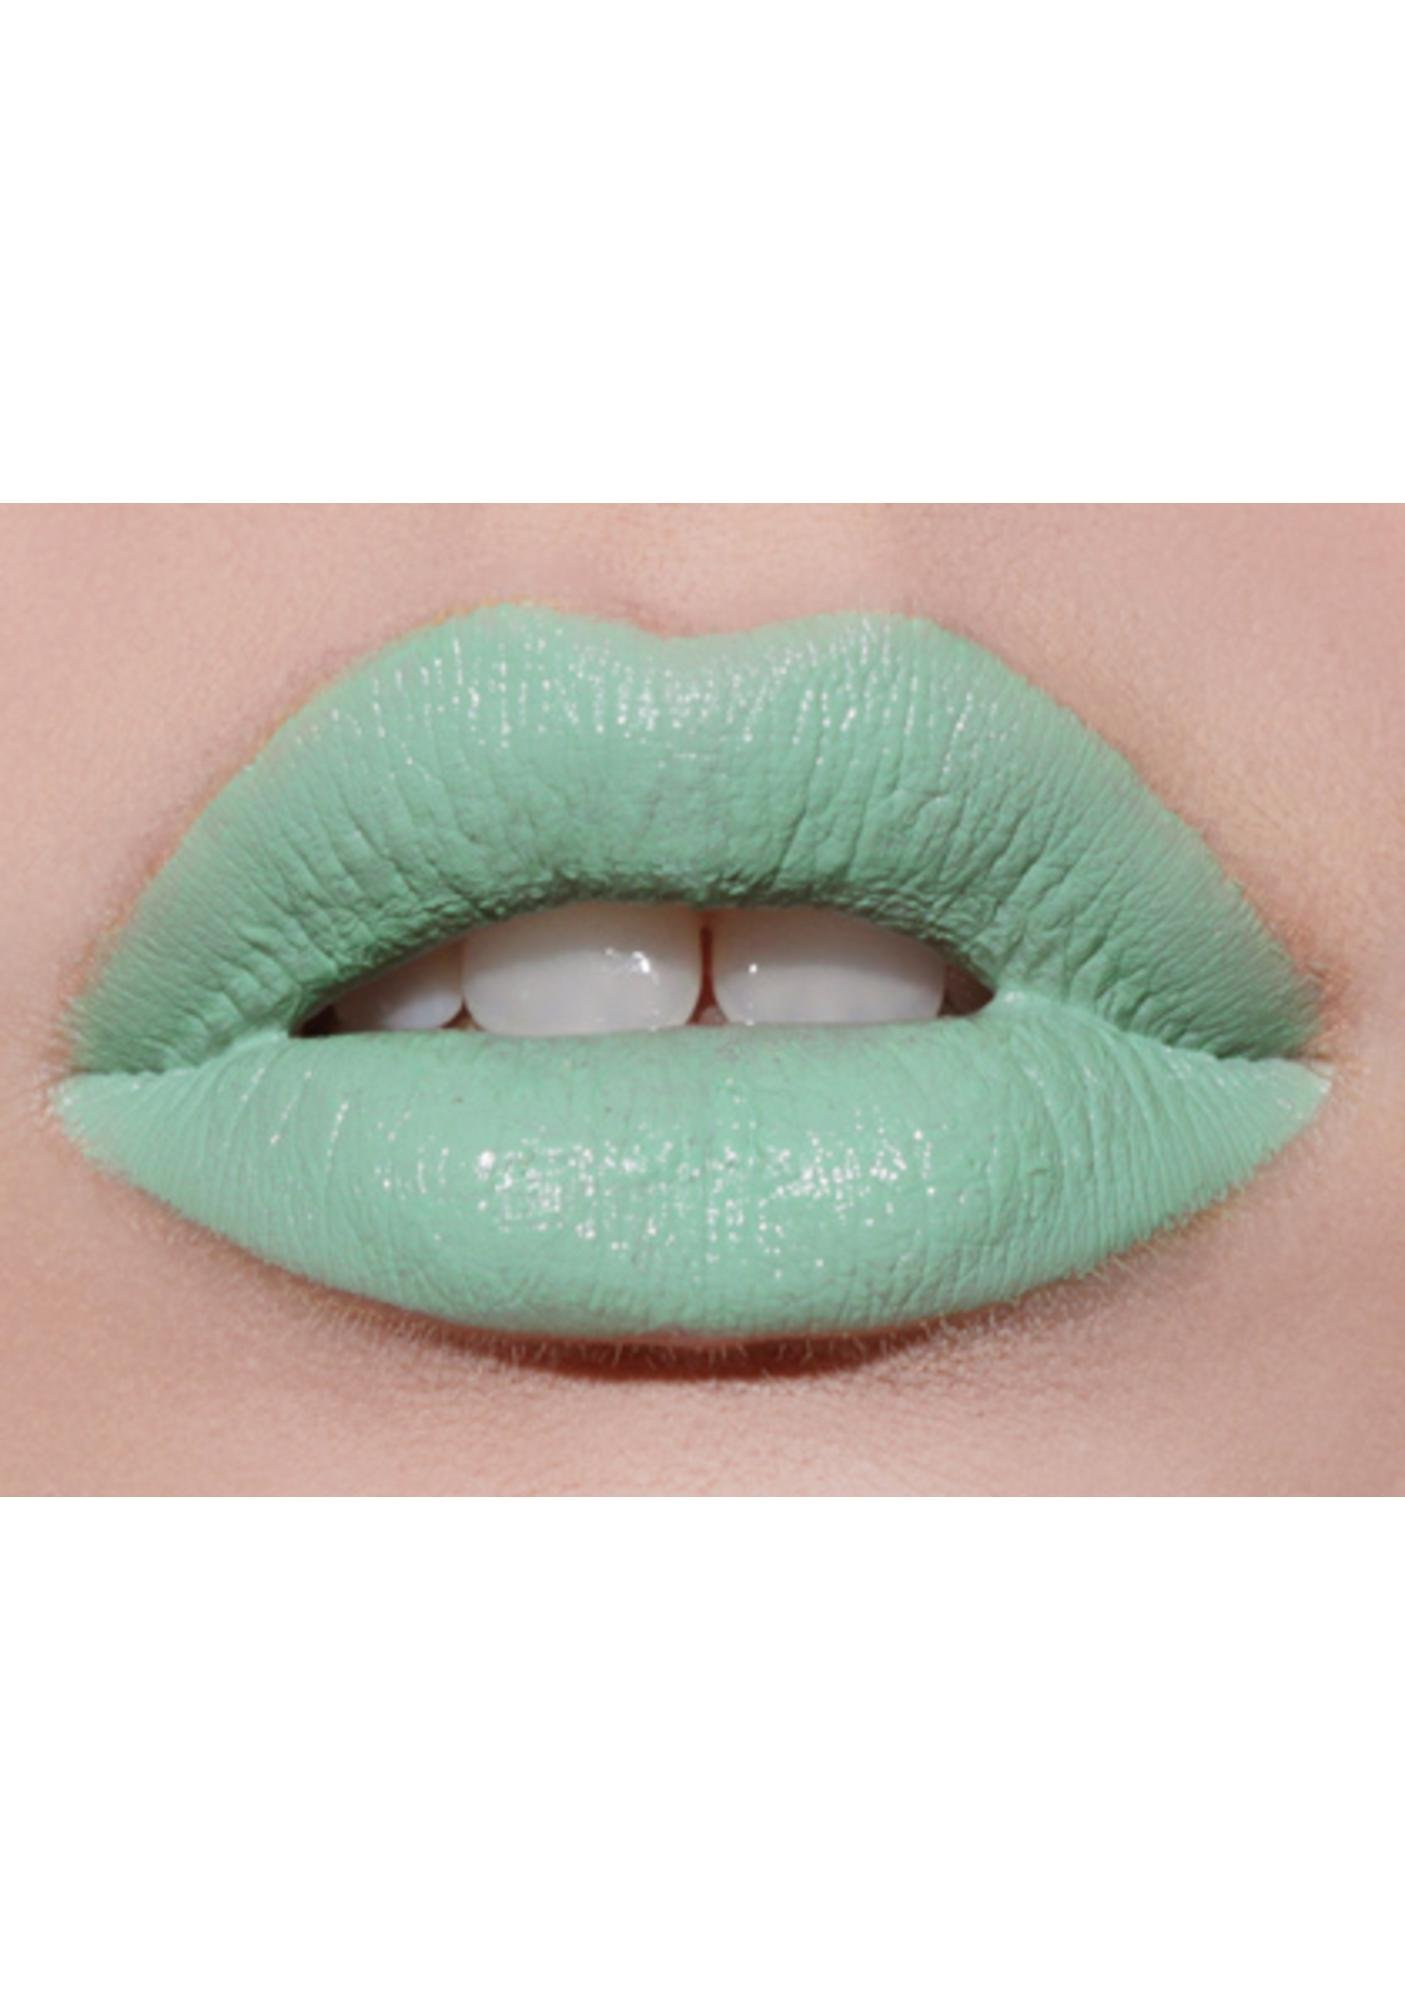 Lime Crime Mint To Be Opaque Lipstick